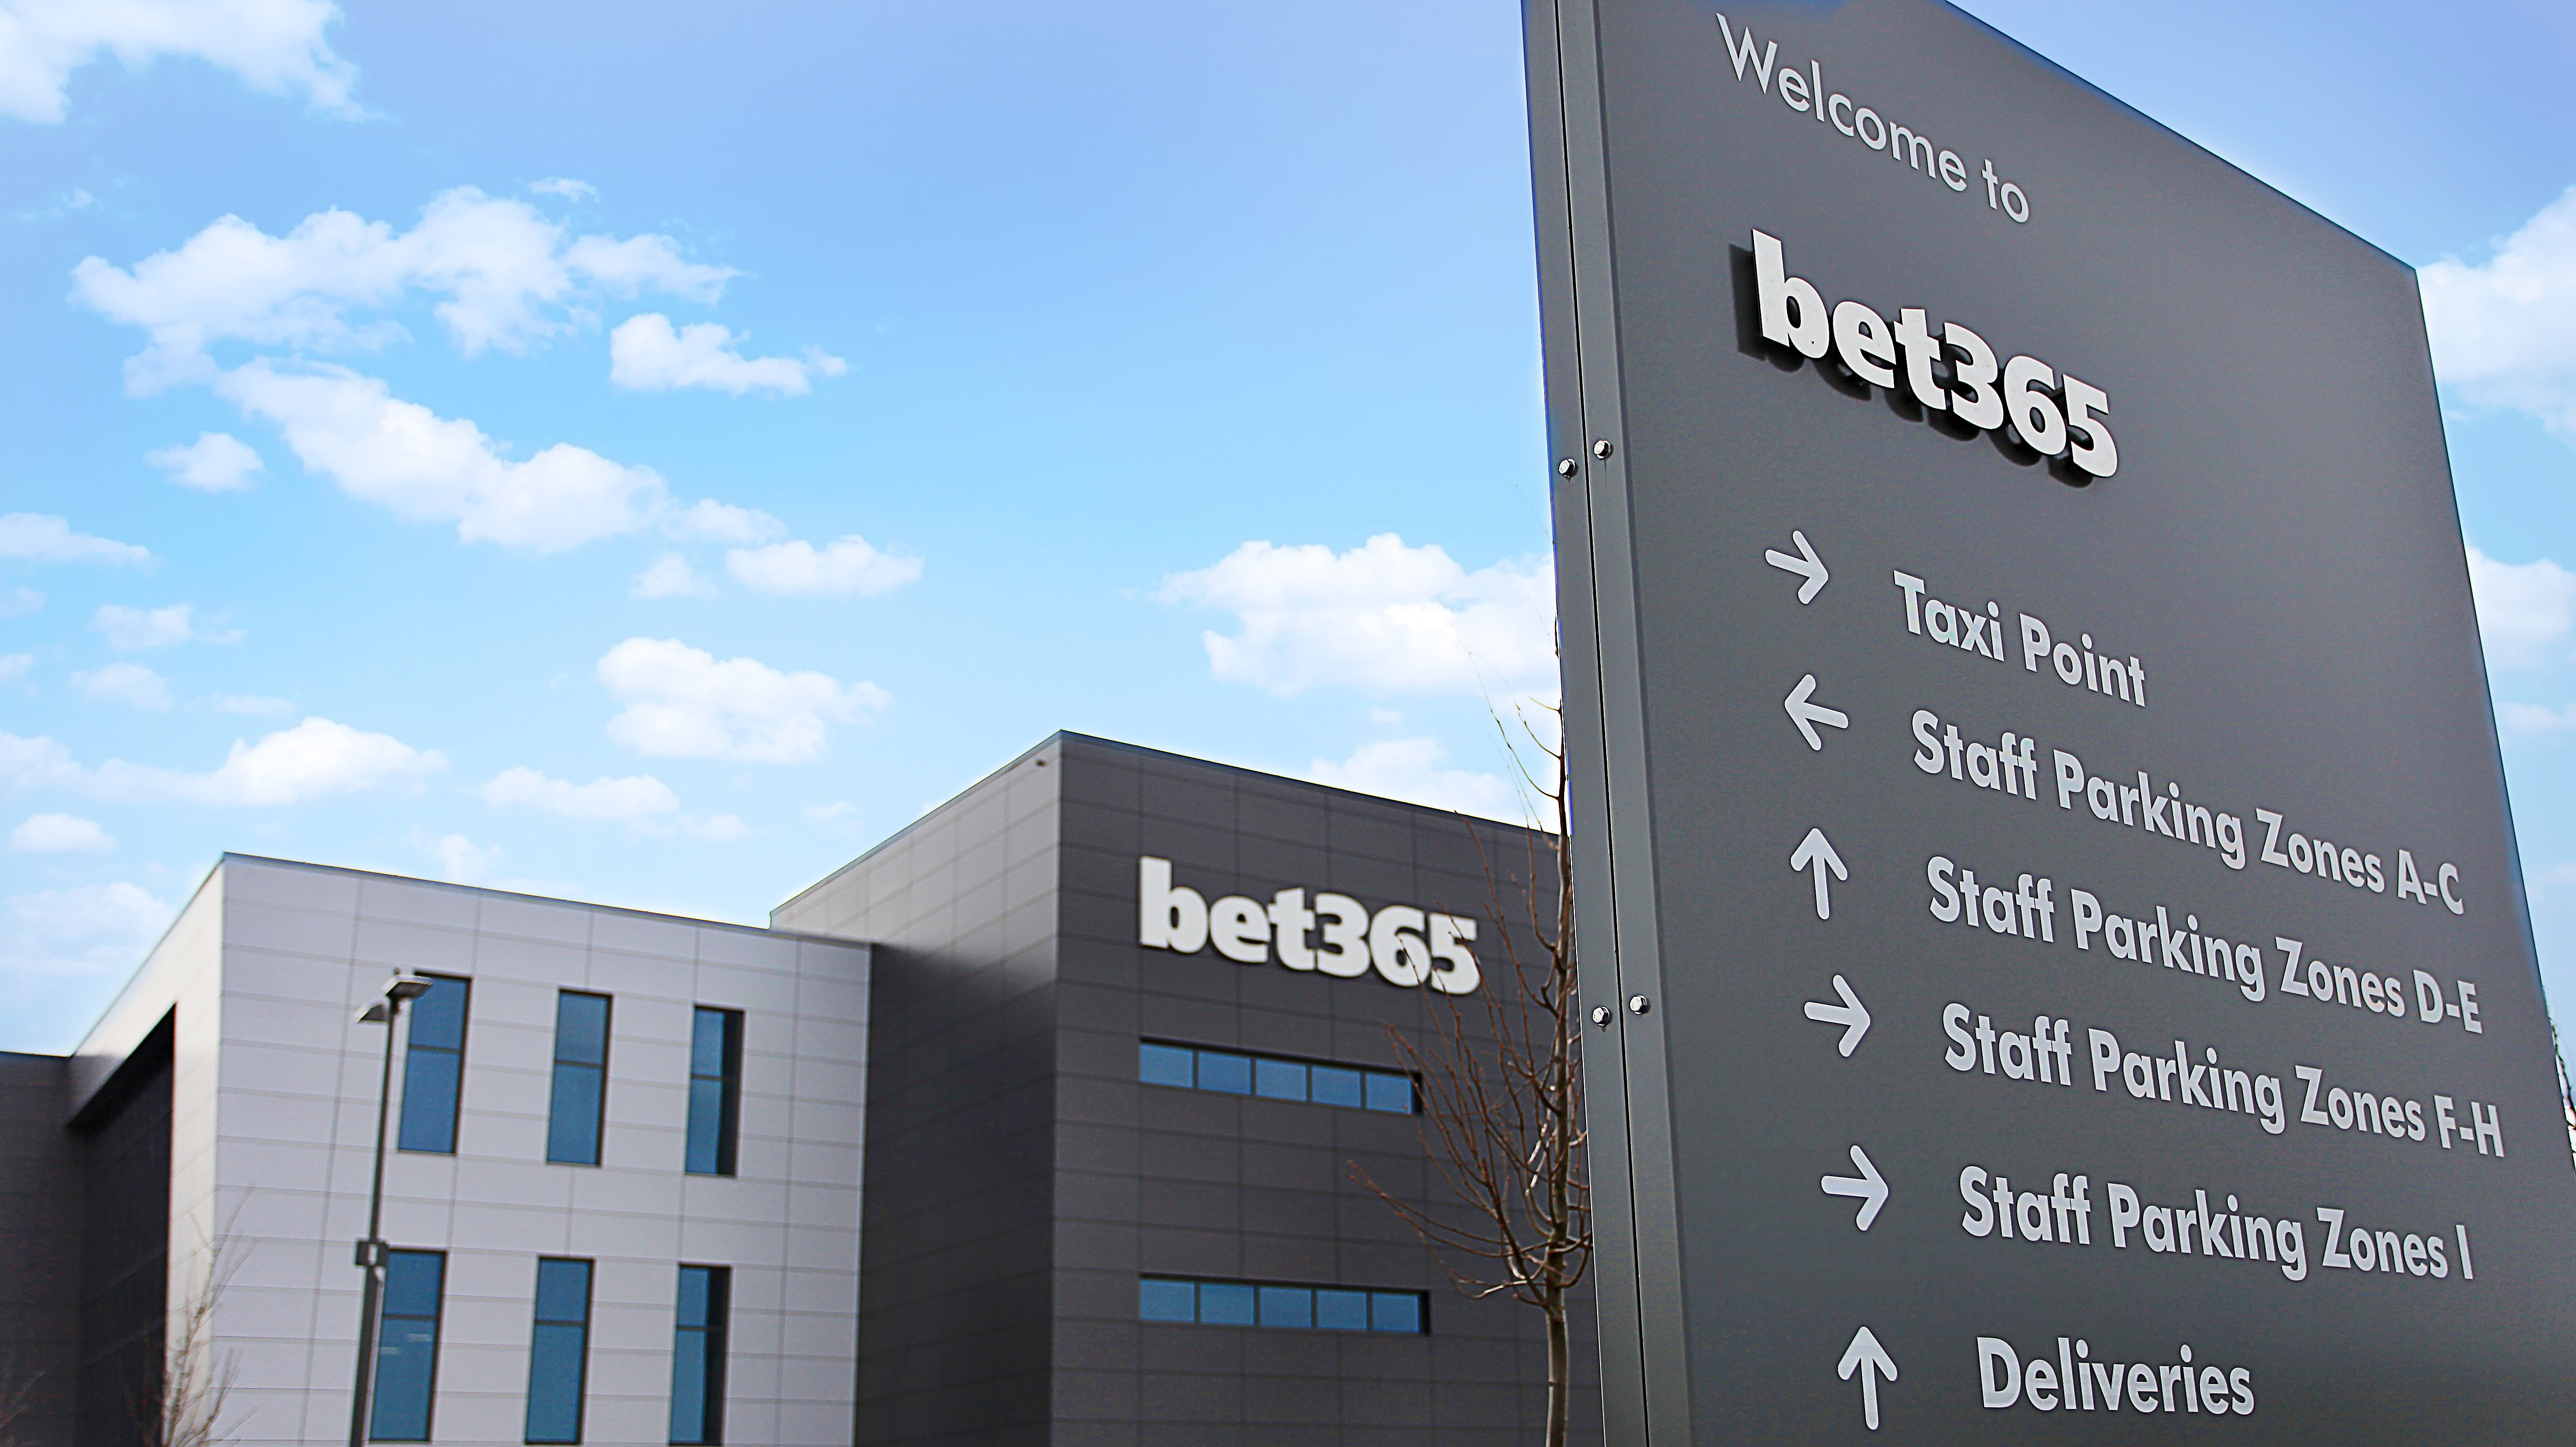 bet365 corporate office, Stoke-on-Trent, UK